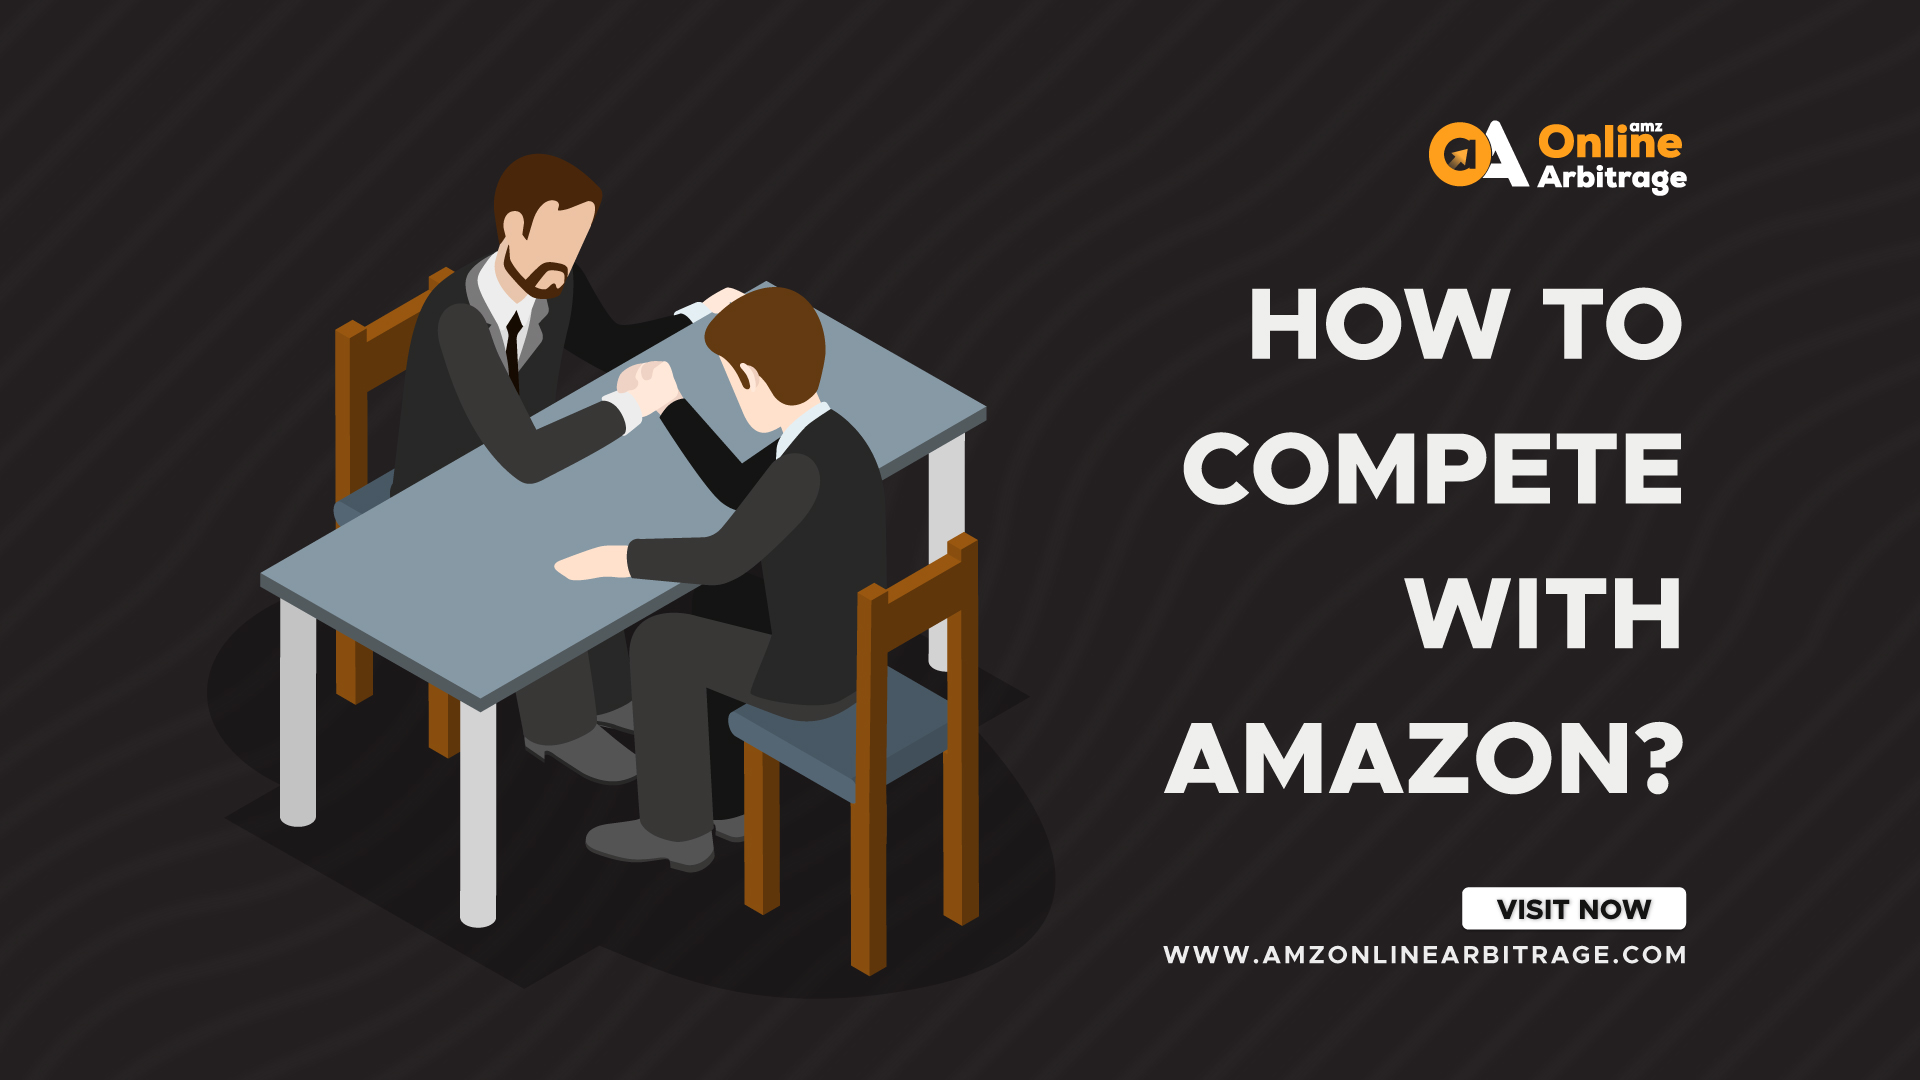 HOW TO COMPETE WITH AMAZON?